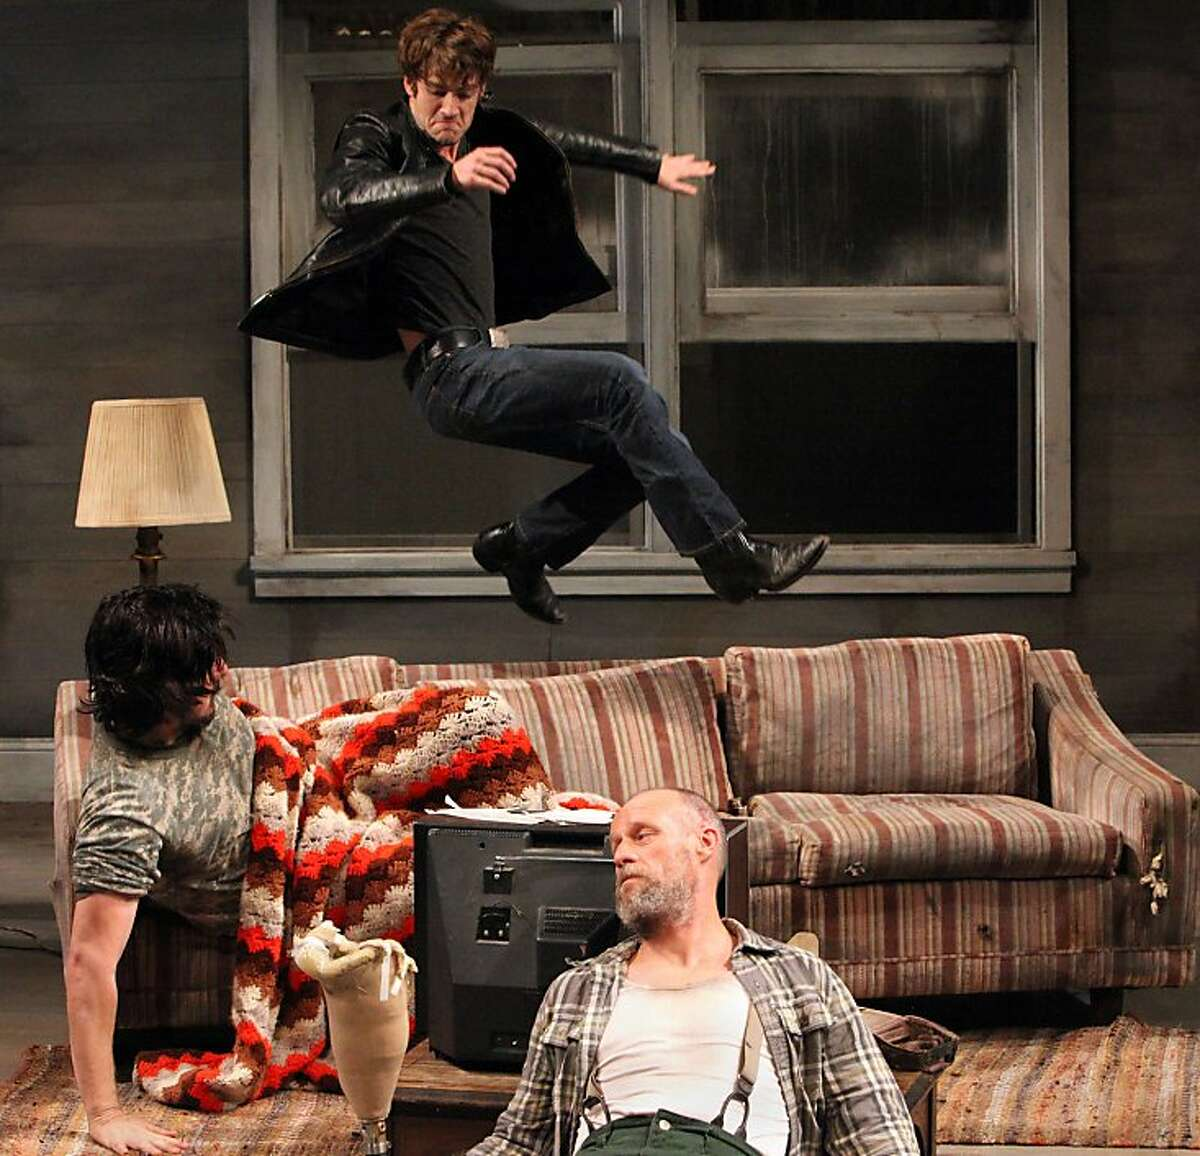 """Vince (Patrick Alparone, above) returns to the old homestead, his uncle Bradley (Patrick Kelly Jones, on couch) and grandfather Dodge (Rod Gnapp) and a homecoming he didnt expect in Sam Shepard's """"Buried Child"""" at Magic Theatre"""